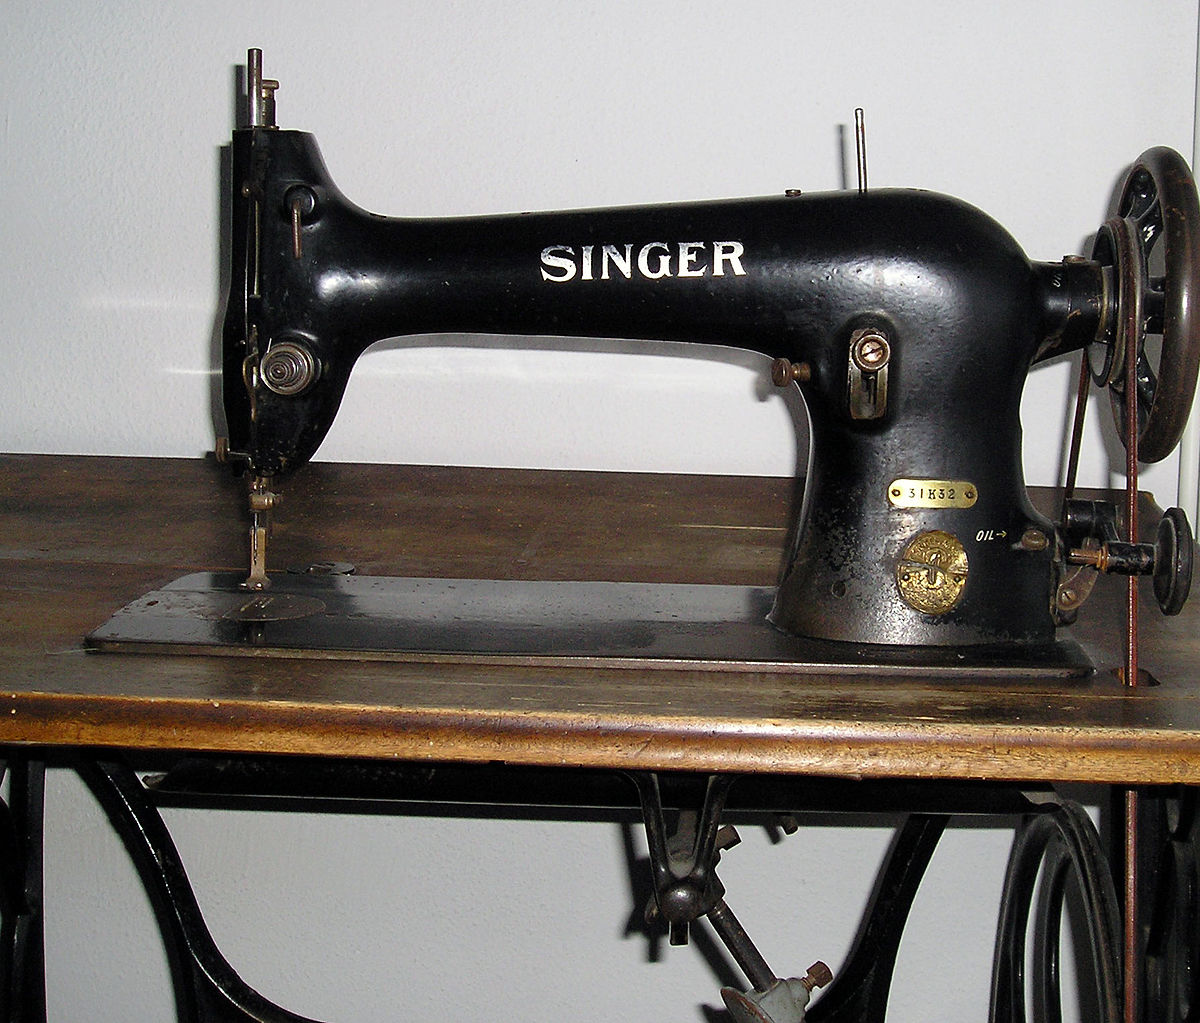 sewing machine simple english wikipedia the free encyclopedia. Black Bedroom Furniture Sets. Home Design Ideas